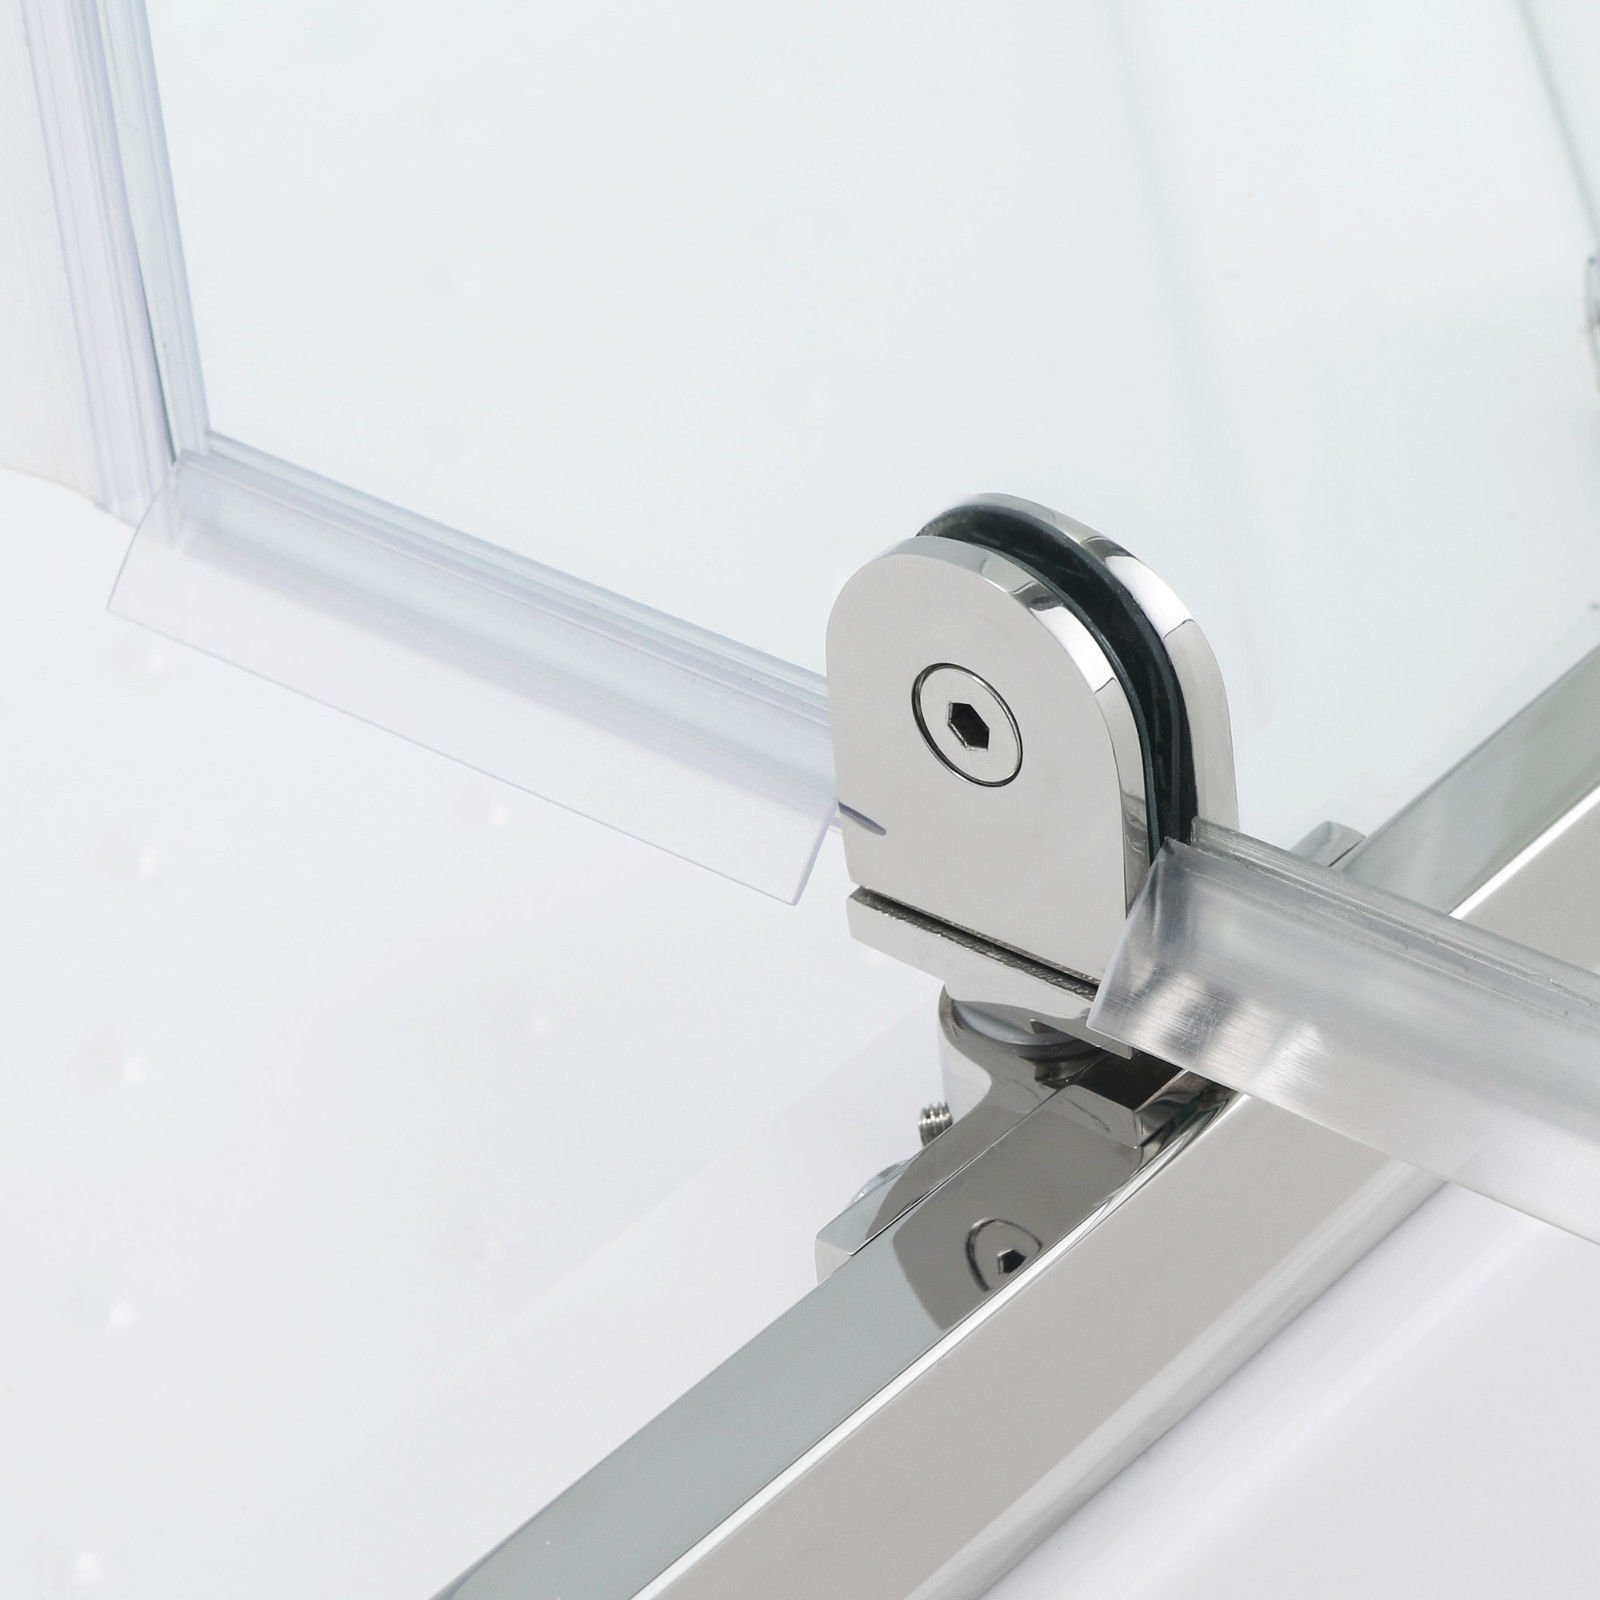 SUNNY SHOWER A33, Semi-frameless Neo-Angle Corner Shower Doors, Fit to 36 3/5'' W x 36 3/5'' D x 71 4/5'' H, 1/4'' Clear Glass, Chrome Finish- Back-wall & Shower Base Sold Separately by SUNNY SHOWER (Image #4)